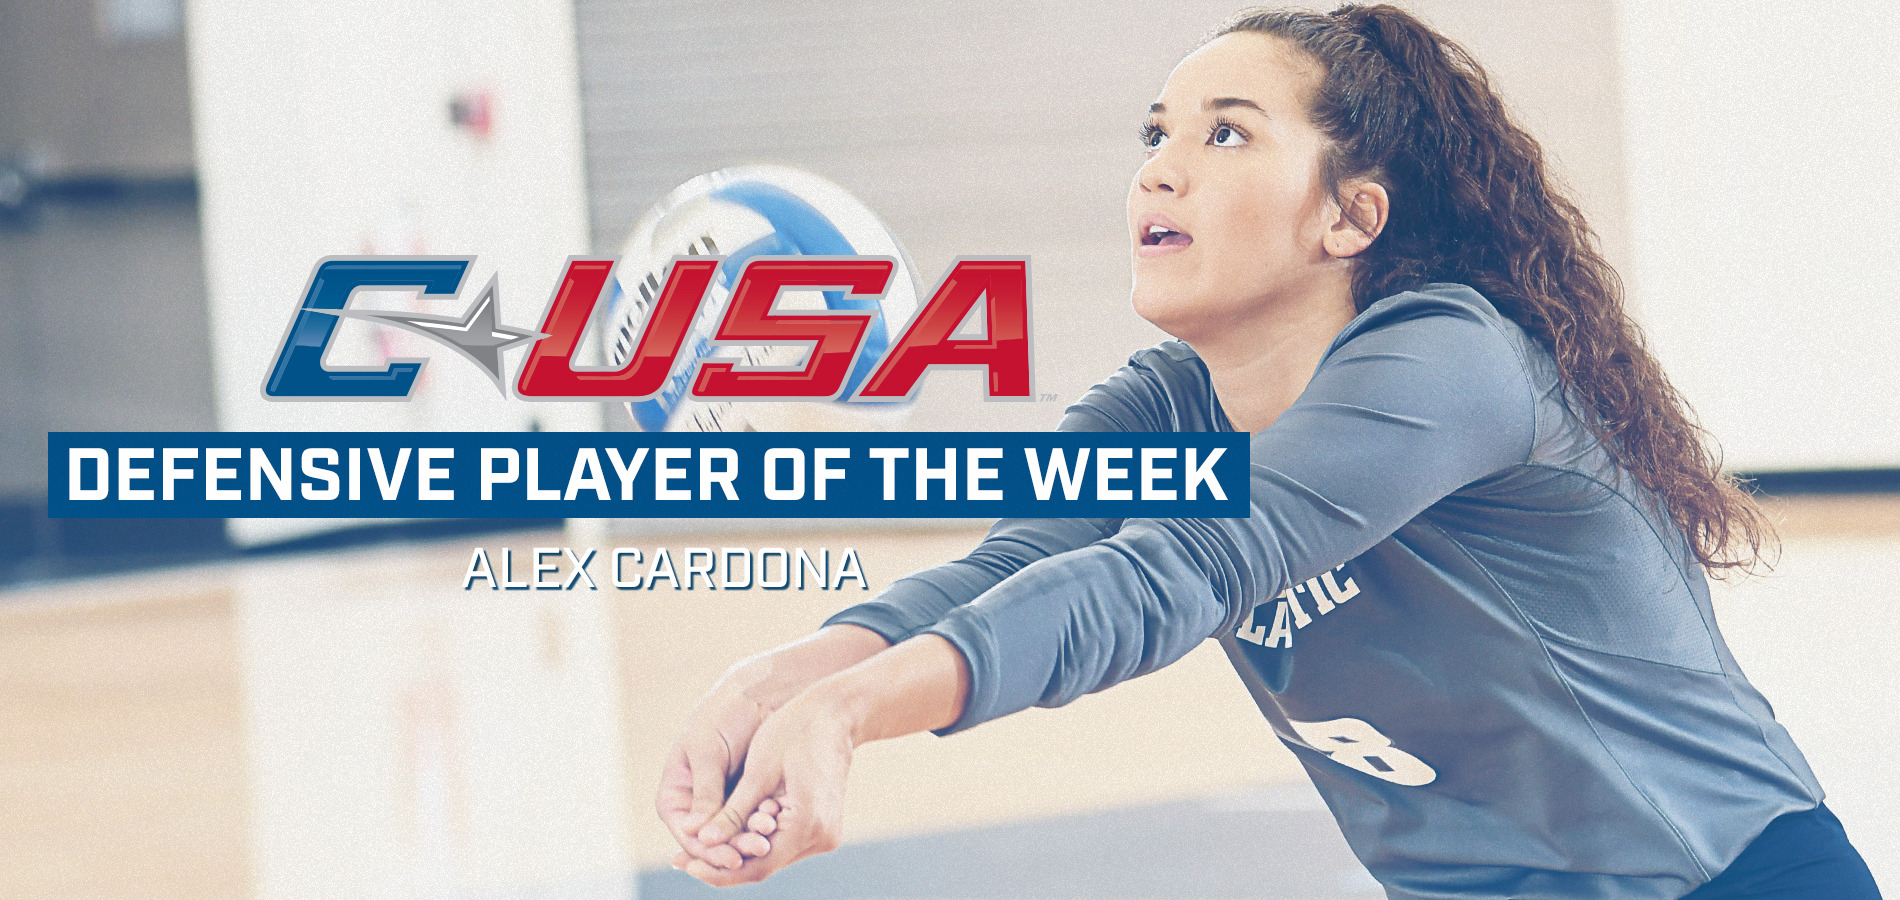 Alex Cardona was named C-USA Defensive Player of the Week.